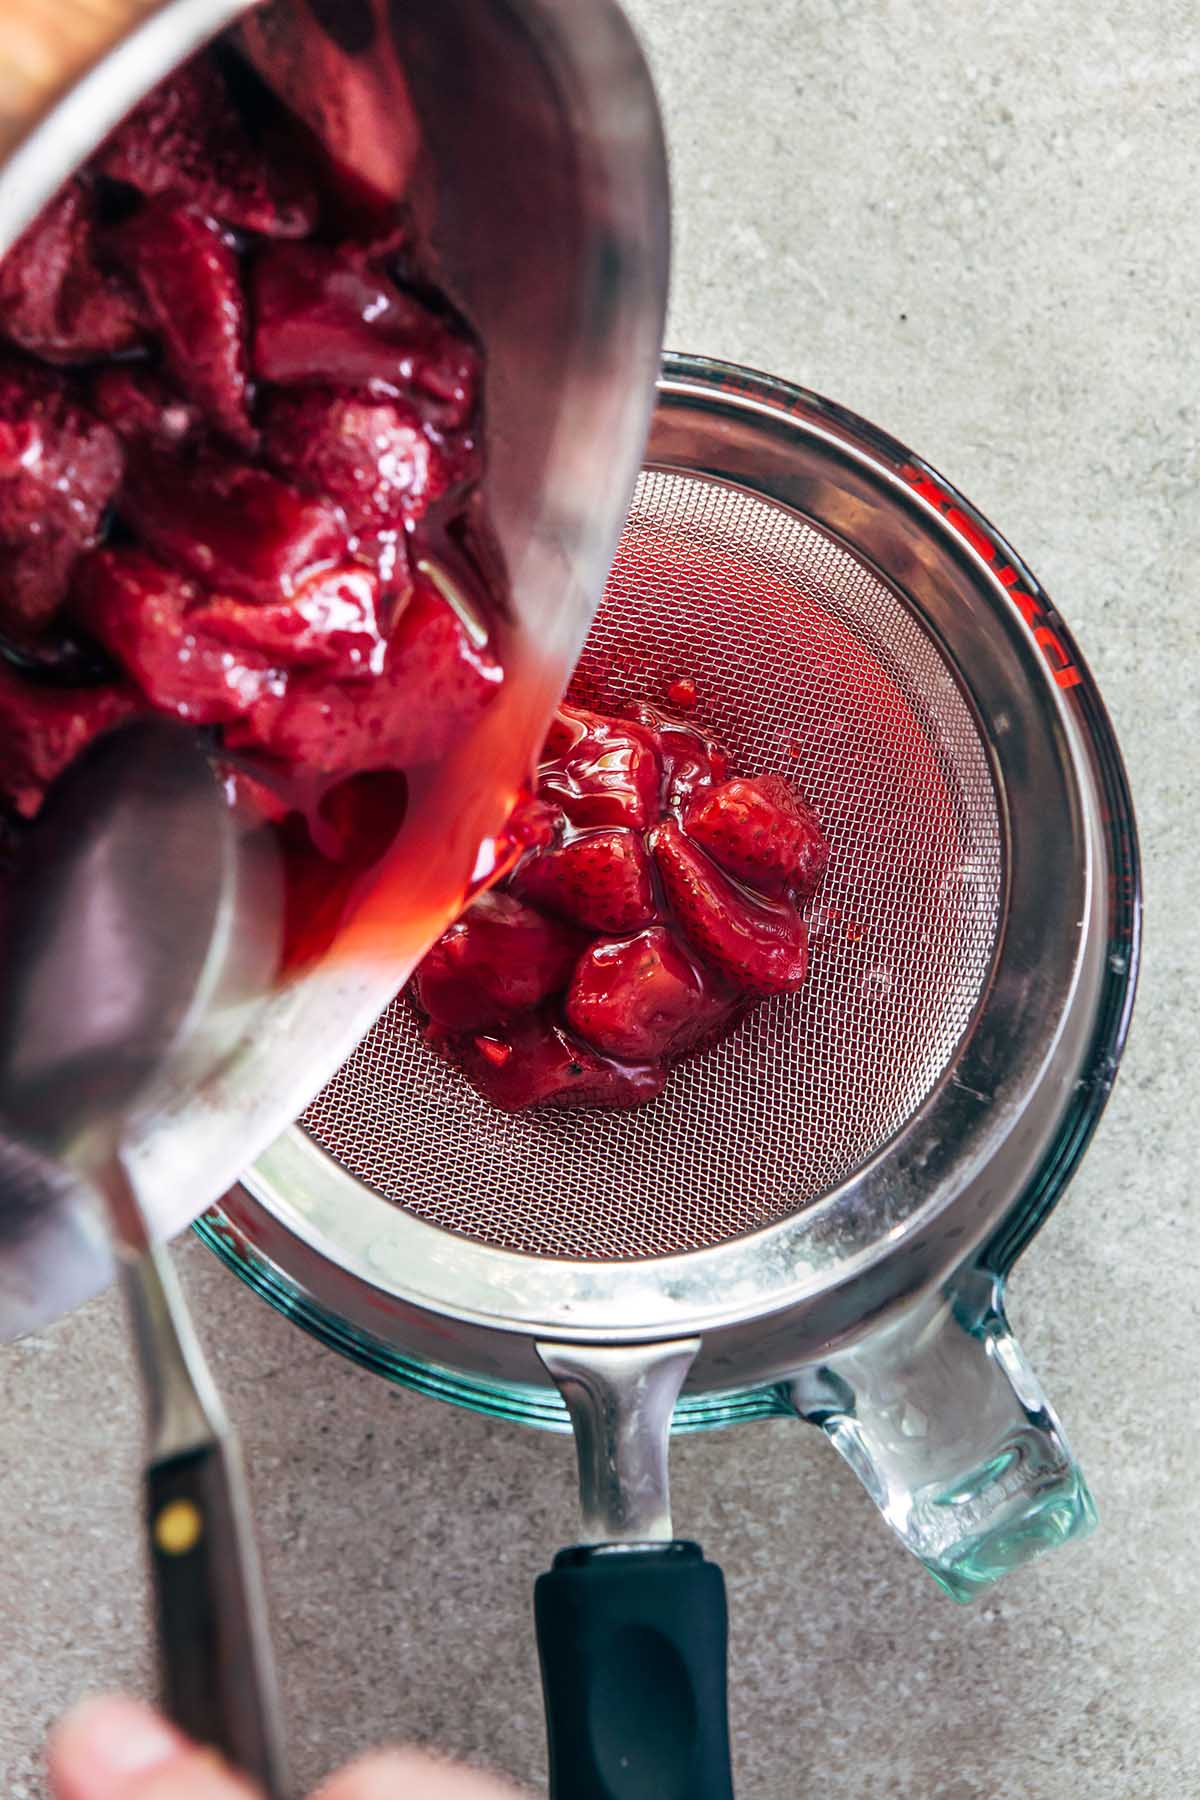 Overhead shot of a spoon scooping cooked strawberries from a pot into a Pyrex measuring cup with a sieve on top.